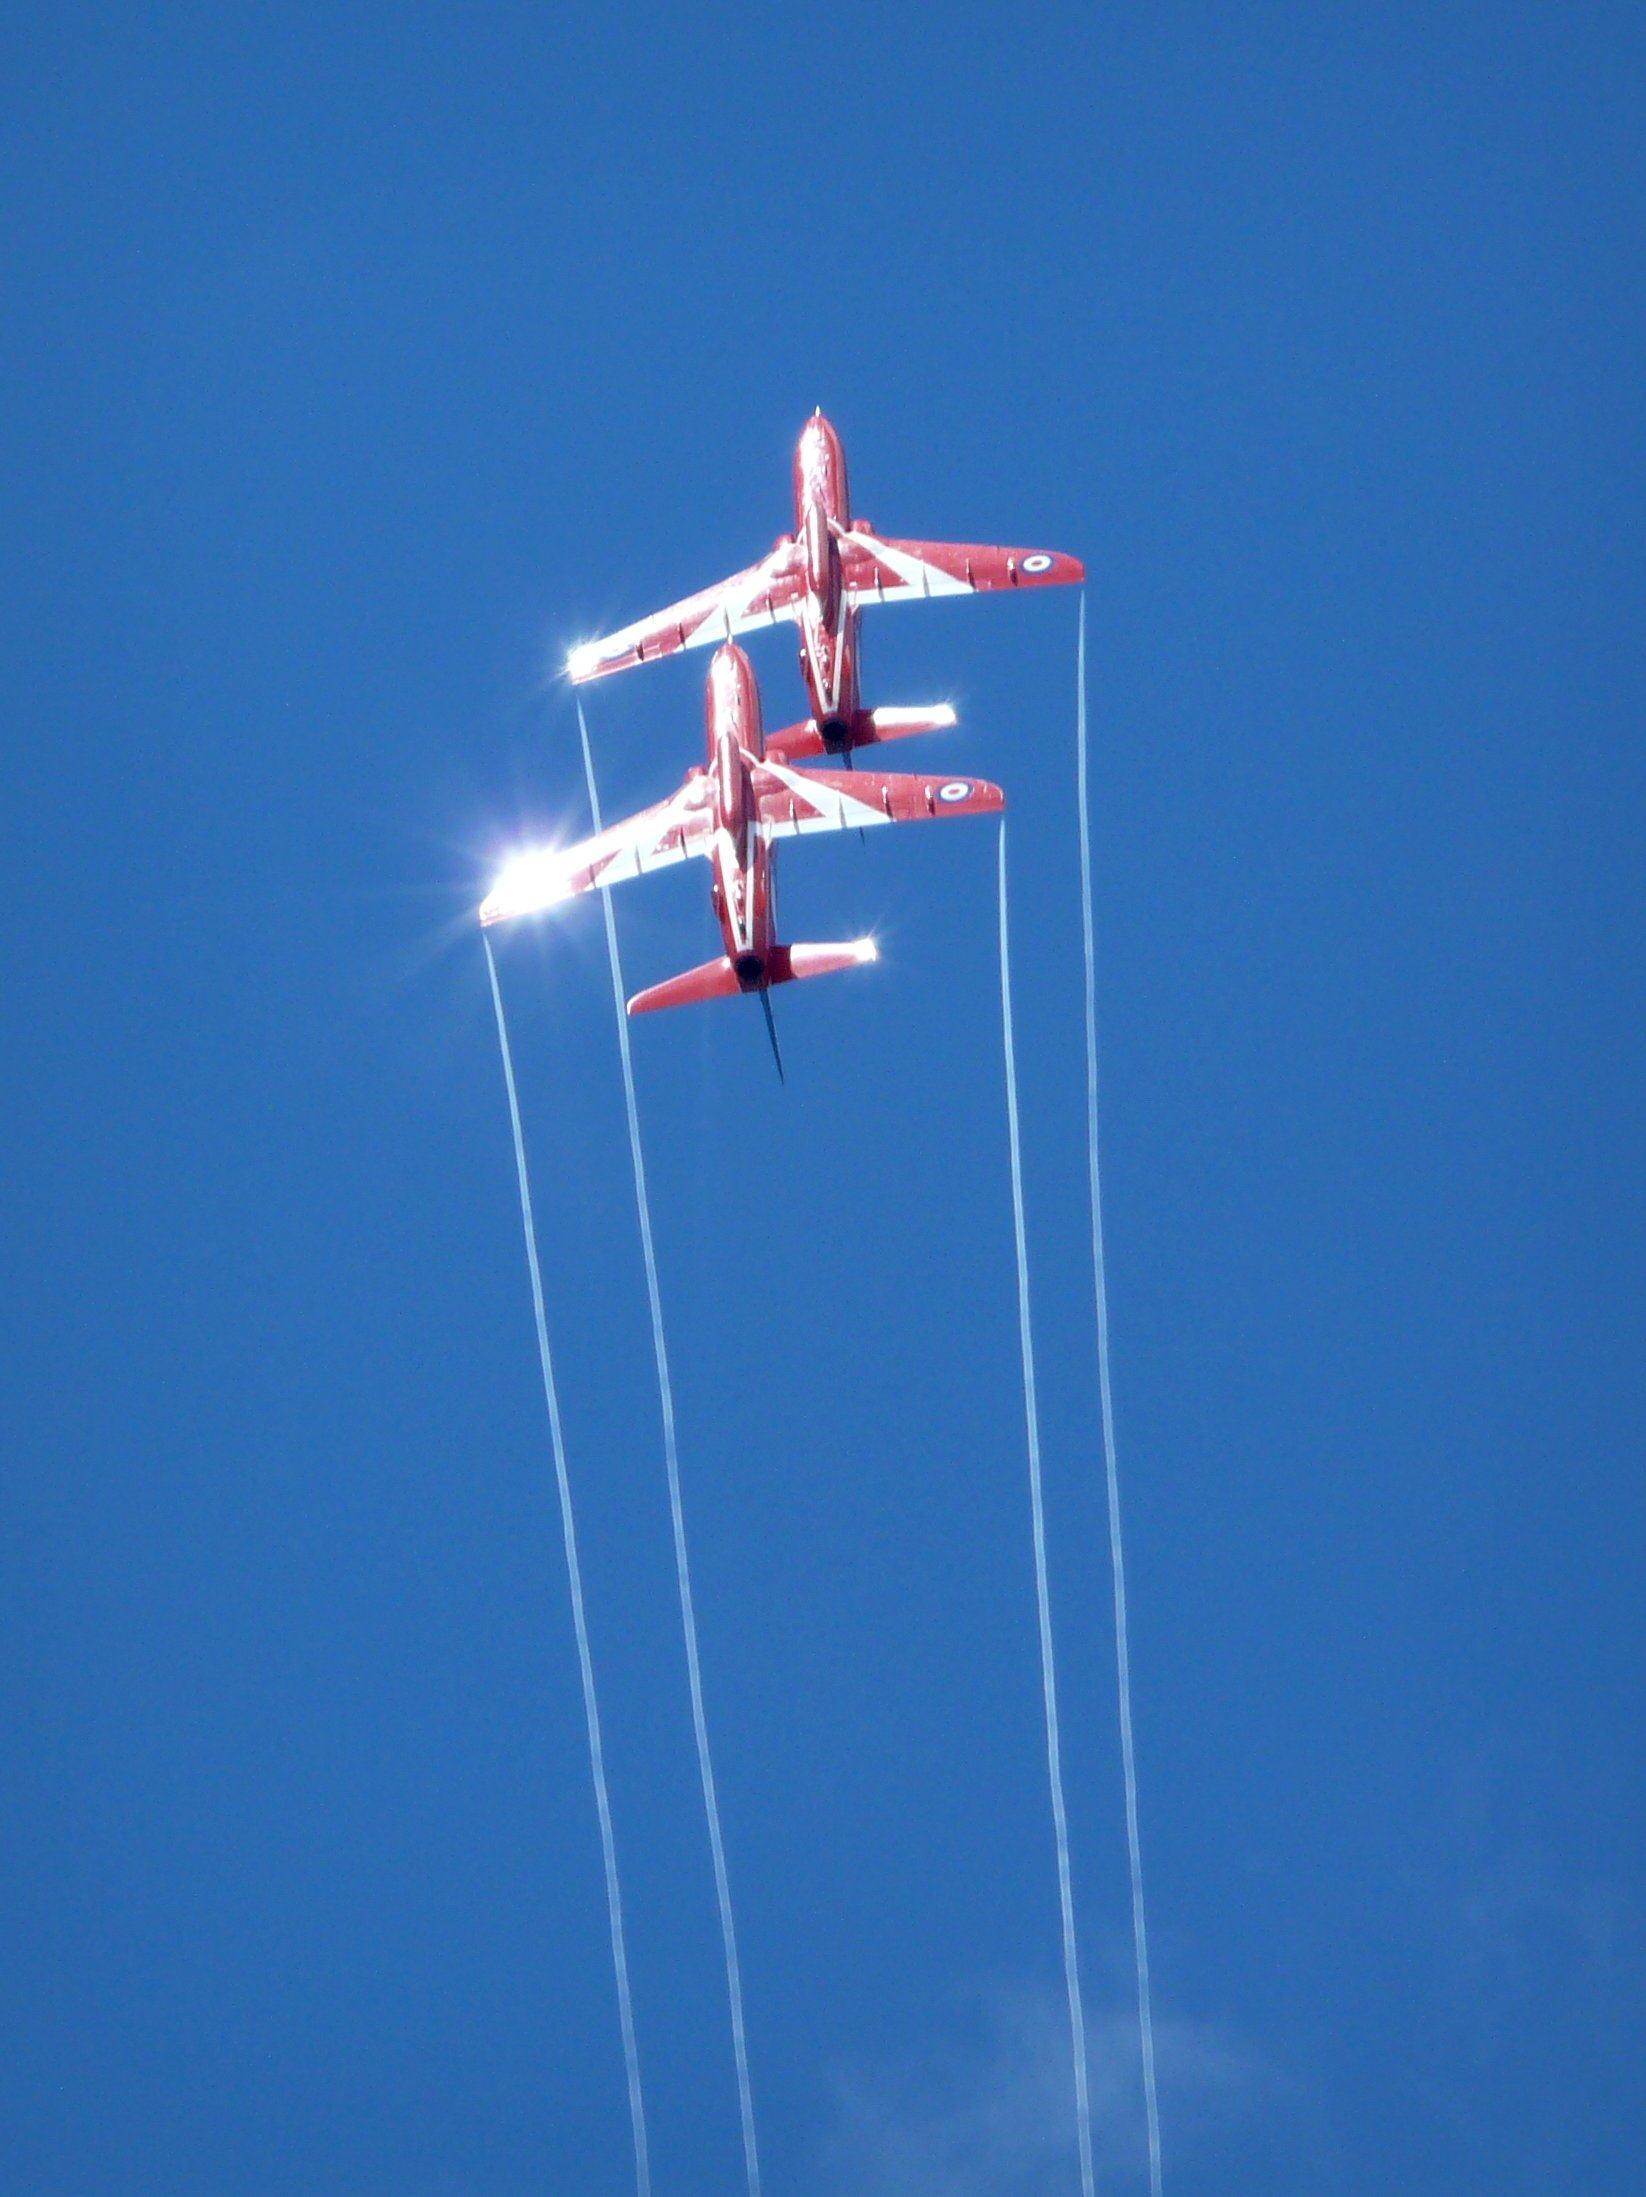 Red Arrows at Farnborough Airshow 2010